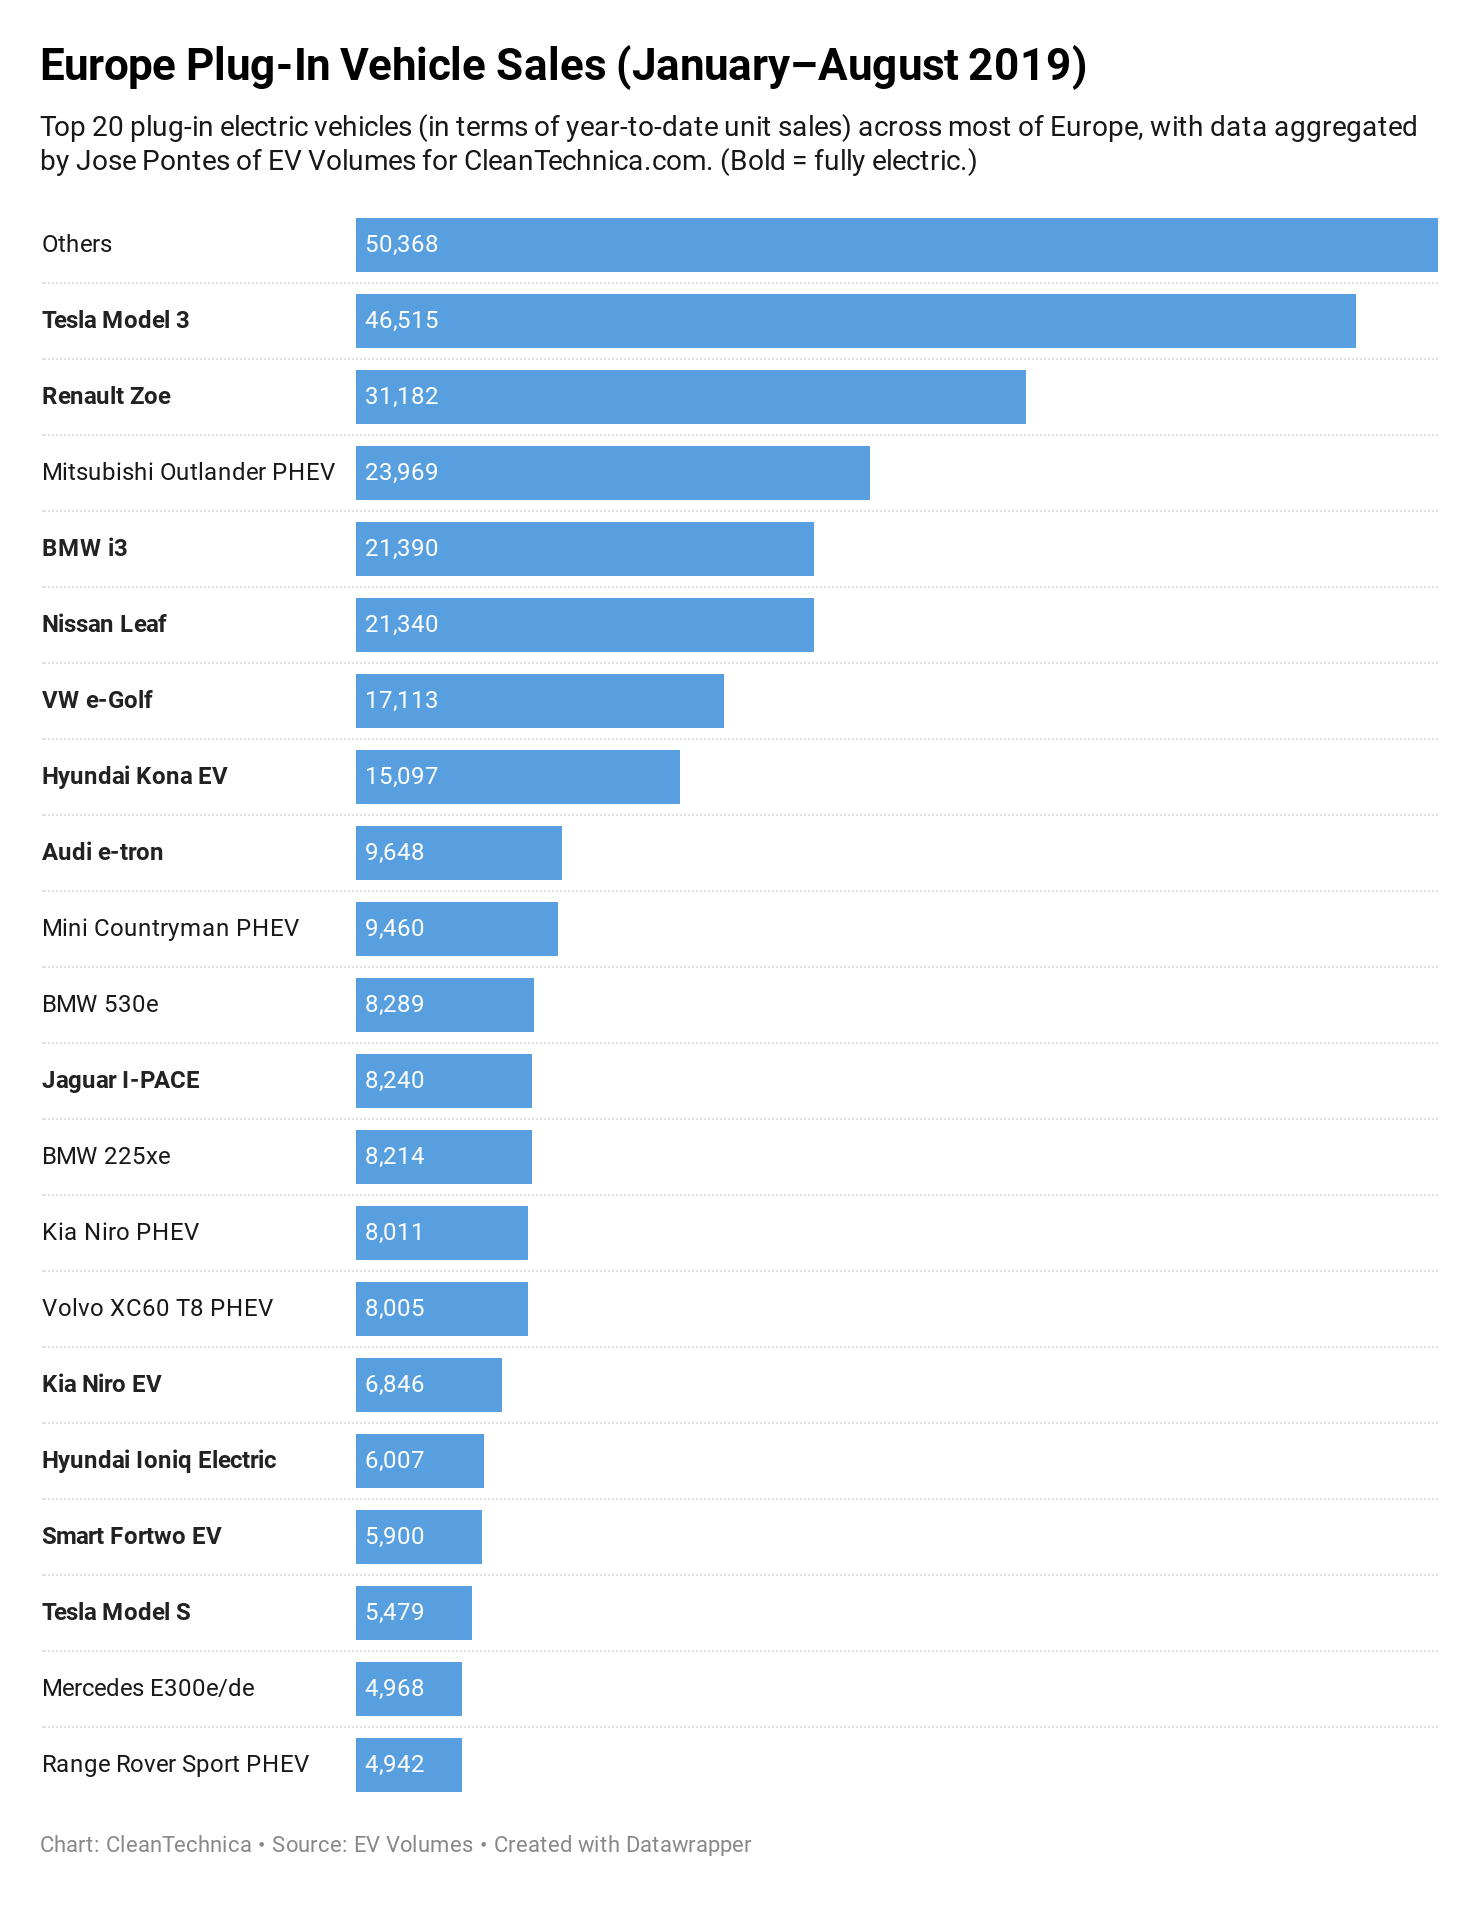 Chart: Top 20 Models Europe Plug-in Vehicle Sales January-August 2019